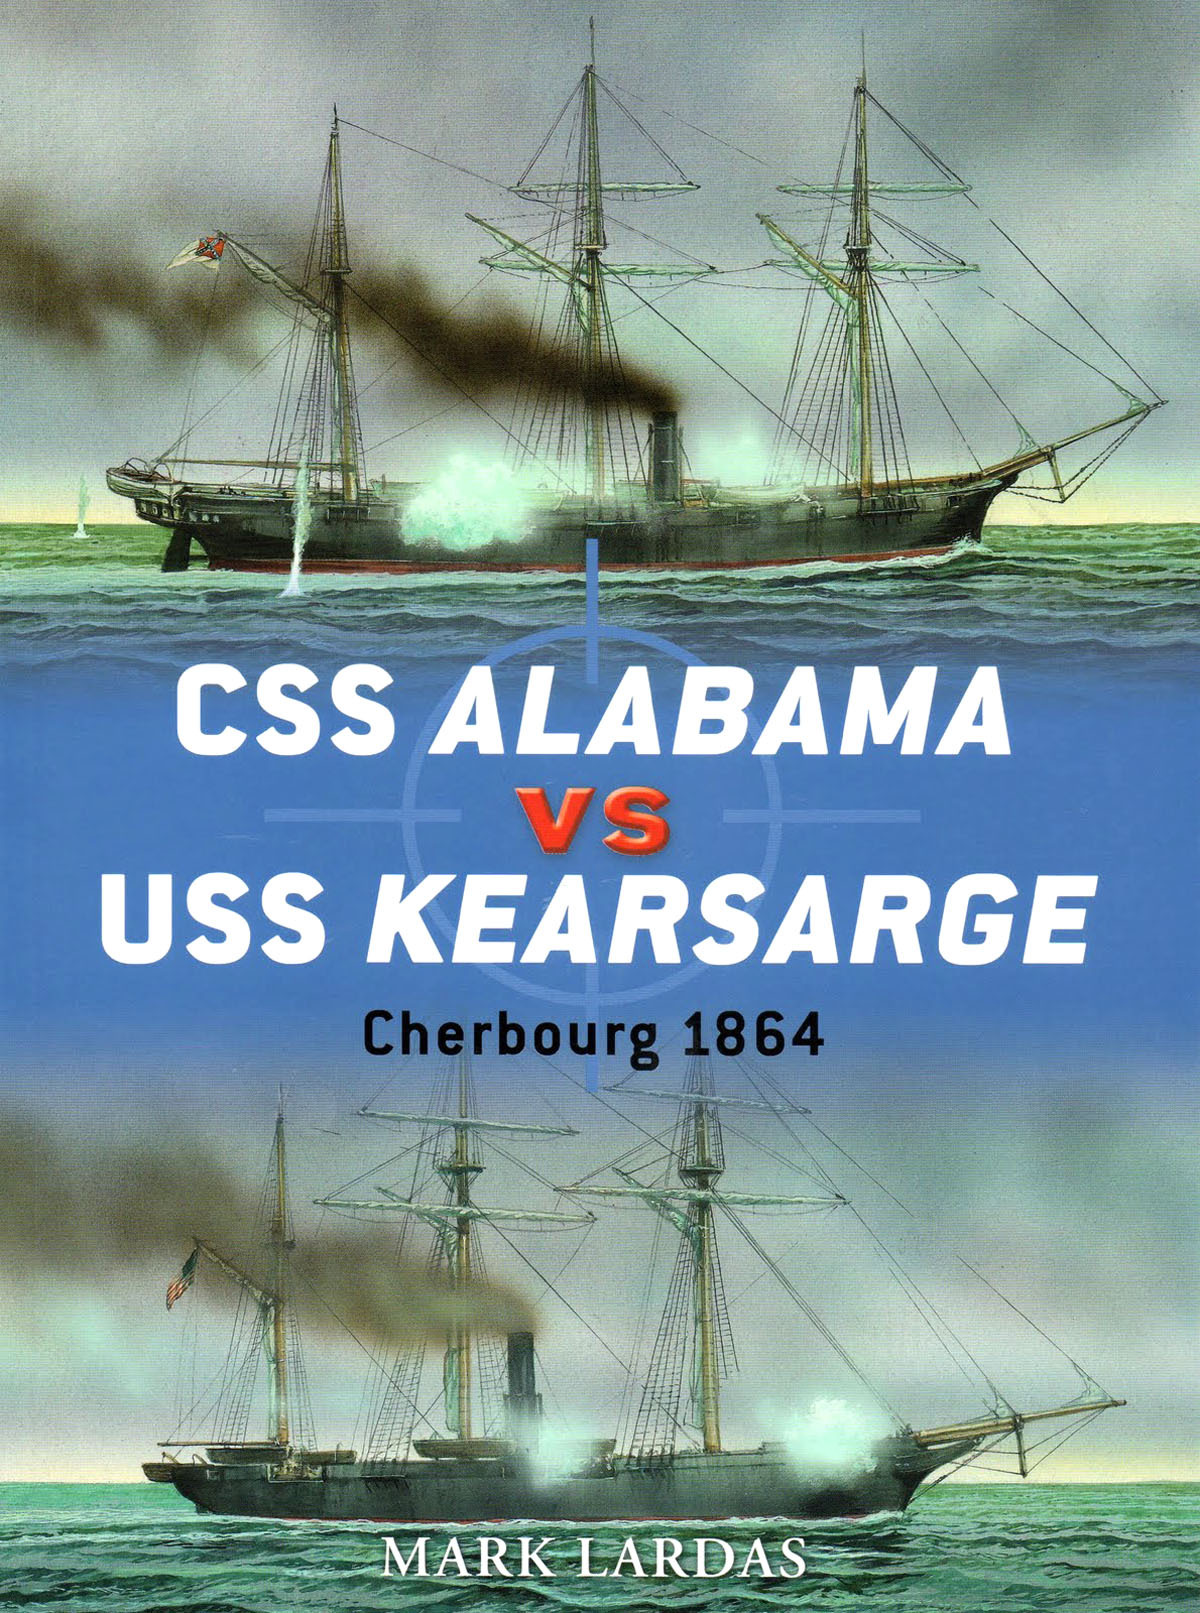 BOOK REVIEW – CSS Alabama vs USS Kearsarge: Cherbourg 1864 By Mark Lardas, Osprey Publishing, (2011) Reviewed by Thomas P. Ostrom The author, Mark Lardas, brings a degree in naval architecture and marine engineering to his analysis of this epic American Civil War naval battle; as well as experience in writing as a military historian, and ship modeler. The book is enhanced with magnificent illustrations by ship modeler and war gamer Peter Dennis. (read the full review)